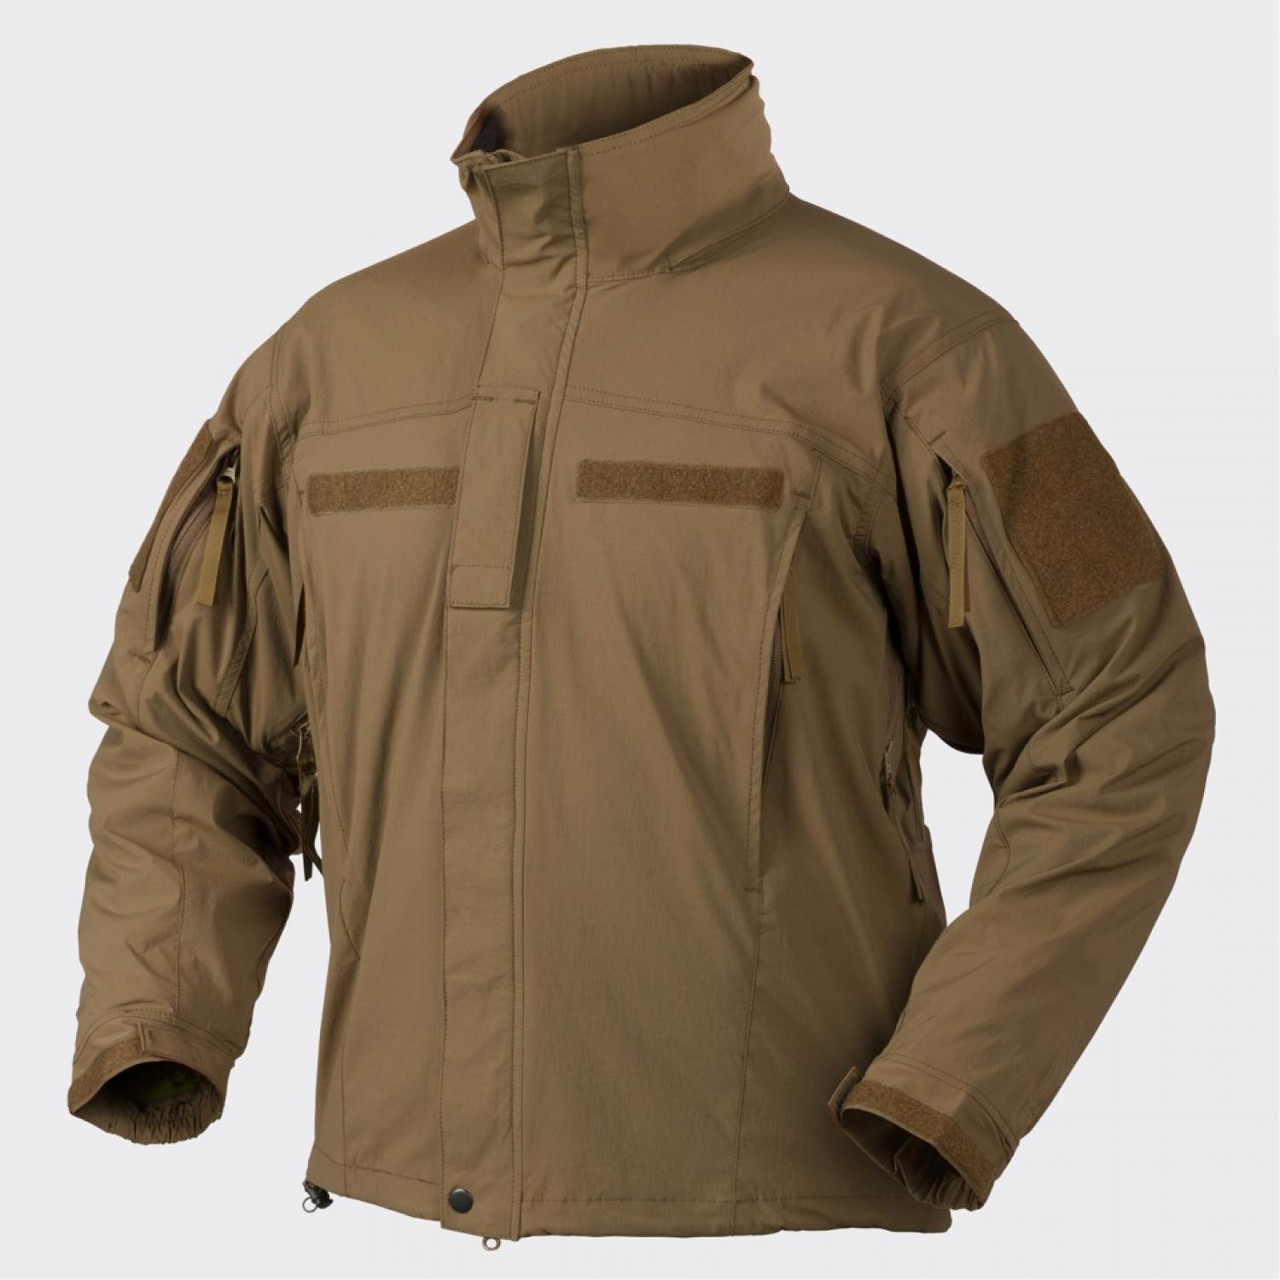 Куртка Soft Shell Helikon-Tex® Level 5 - Койот